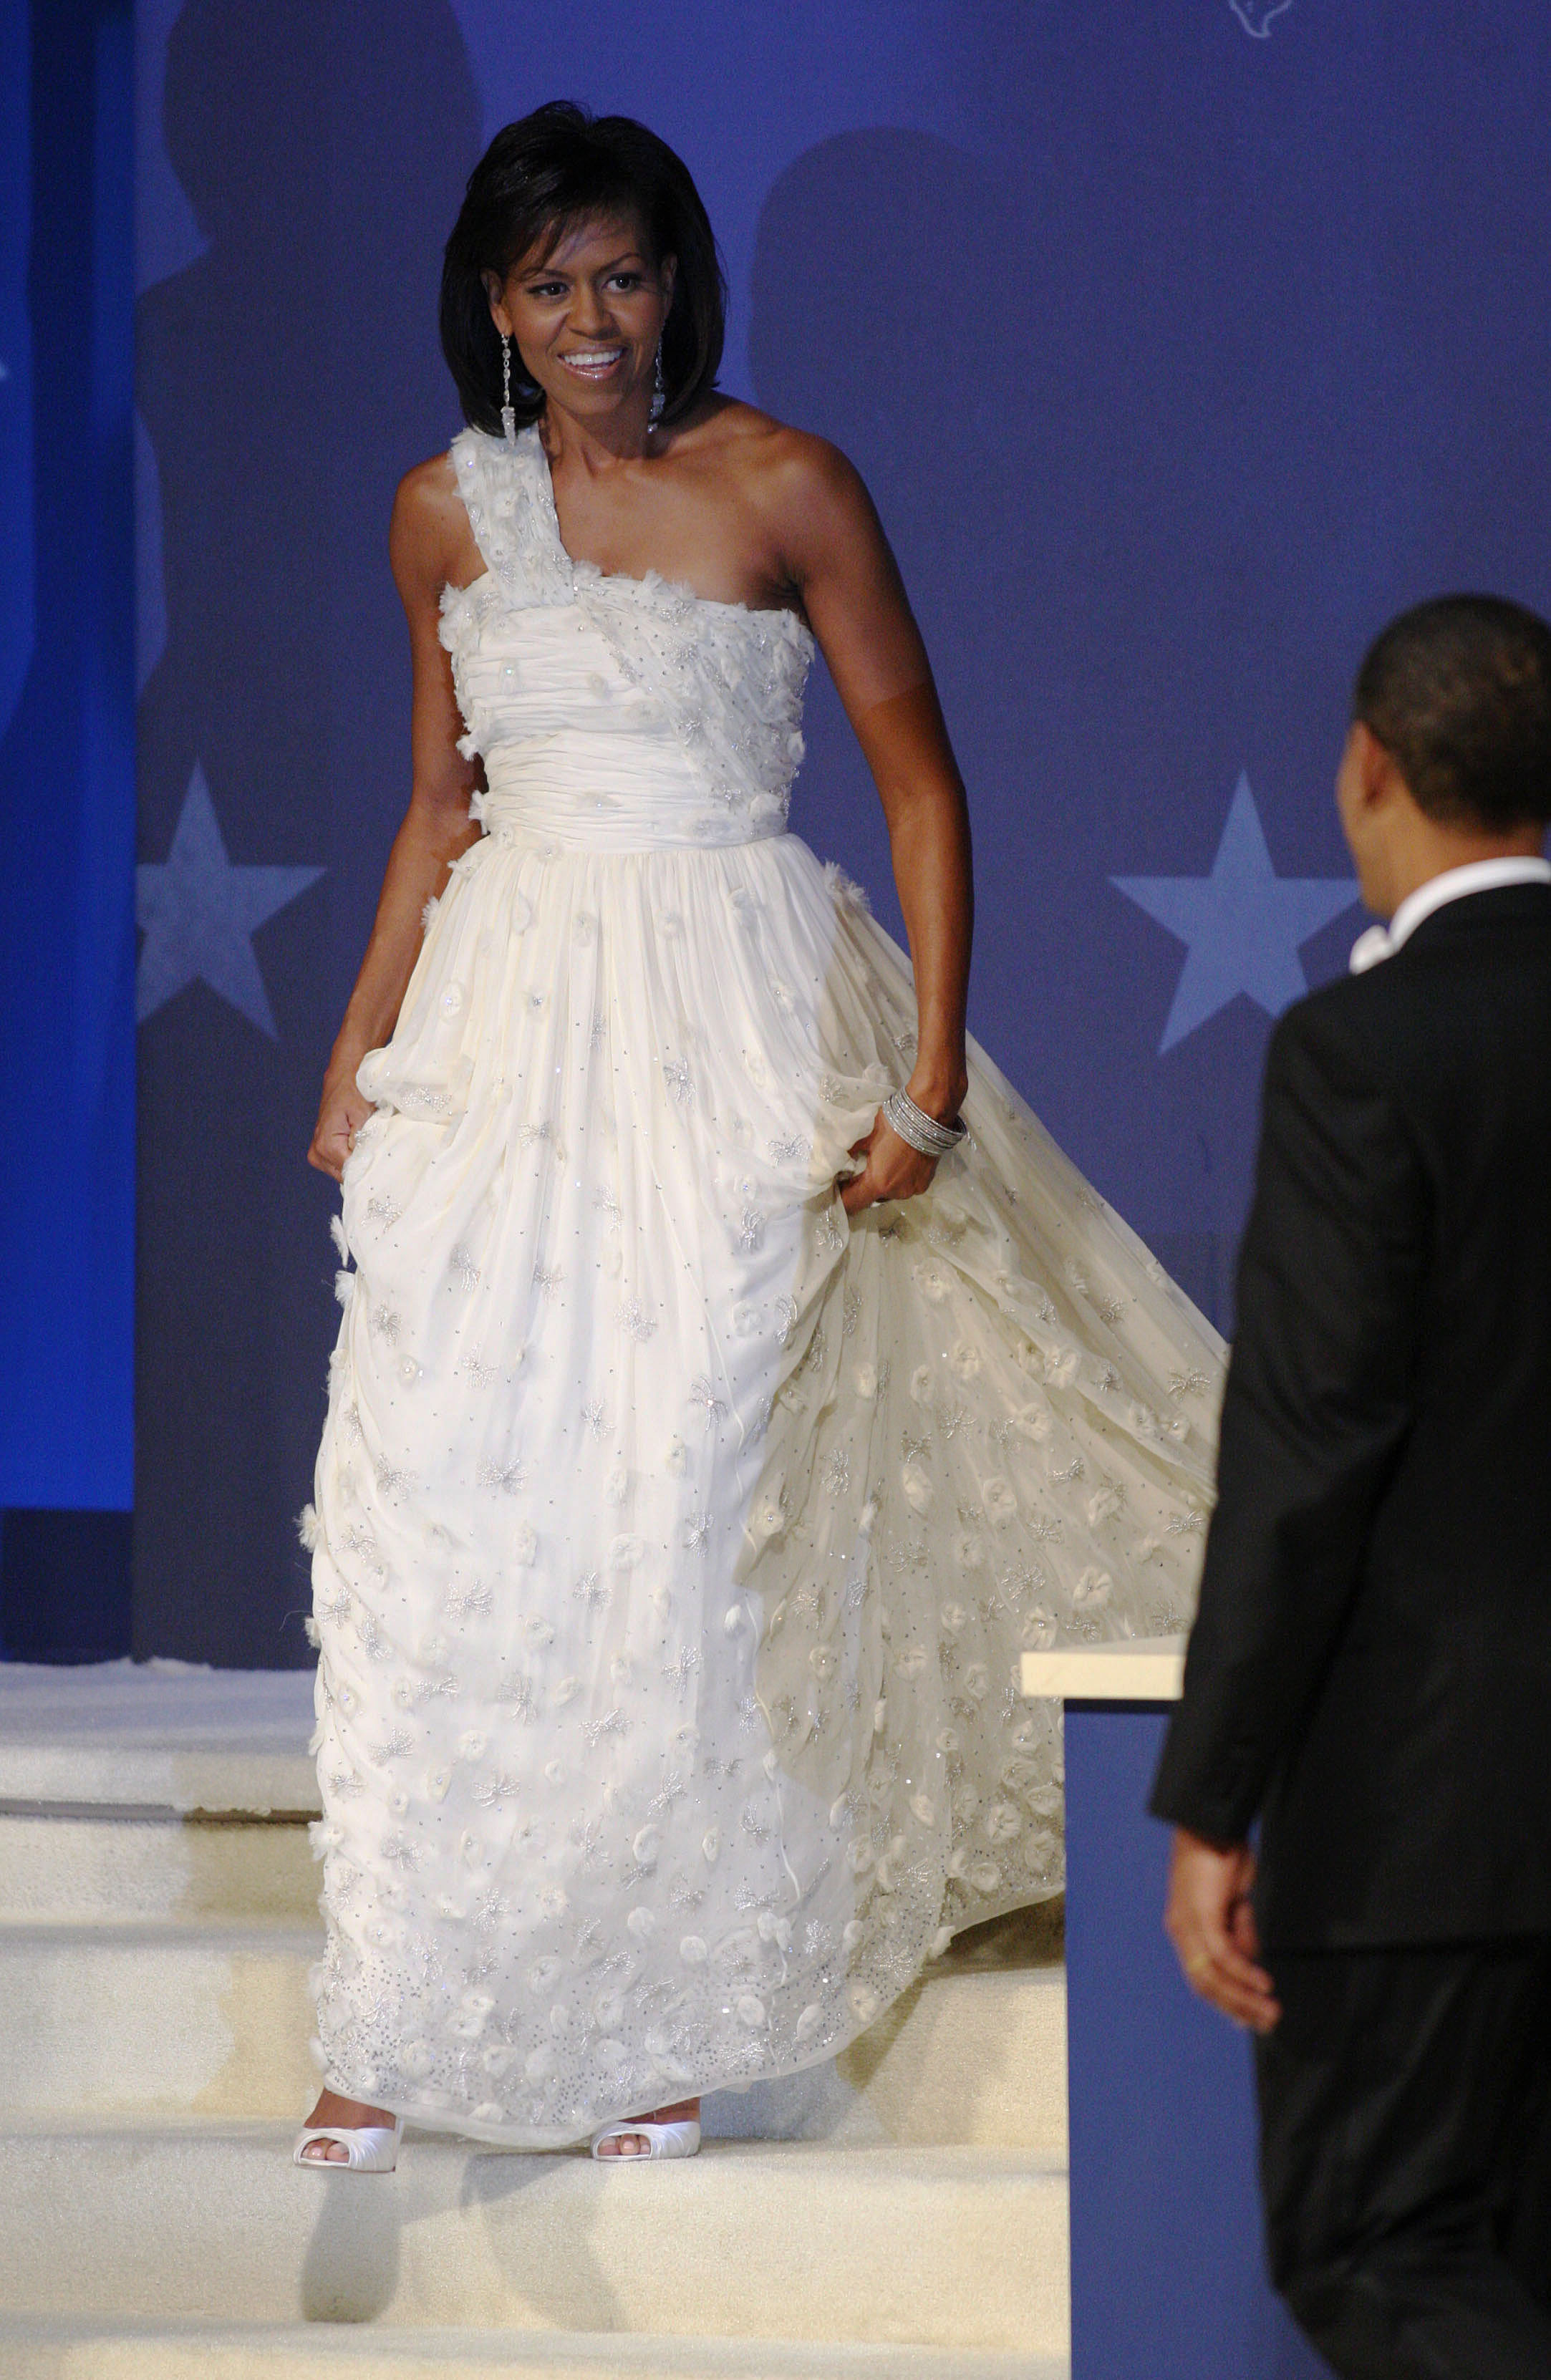 President Barack Obama introduced his wife Michelle at the Commander-In-Chief Ball after his inauguration held at the National Building Museum in Washington on Jan. 20, 2009.